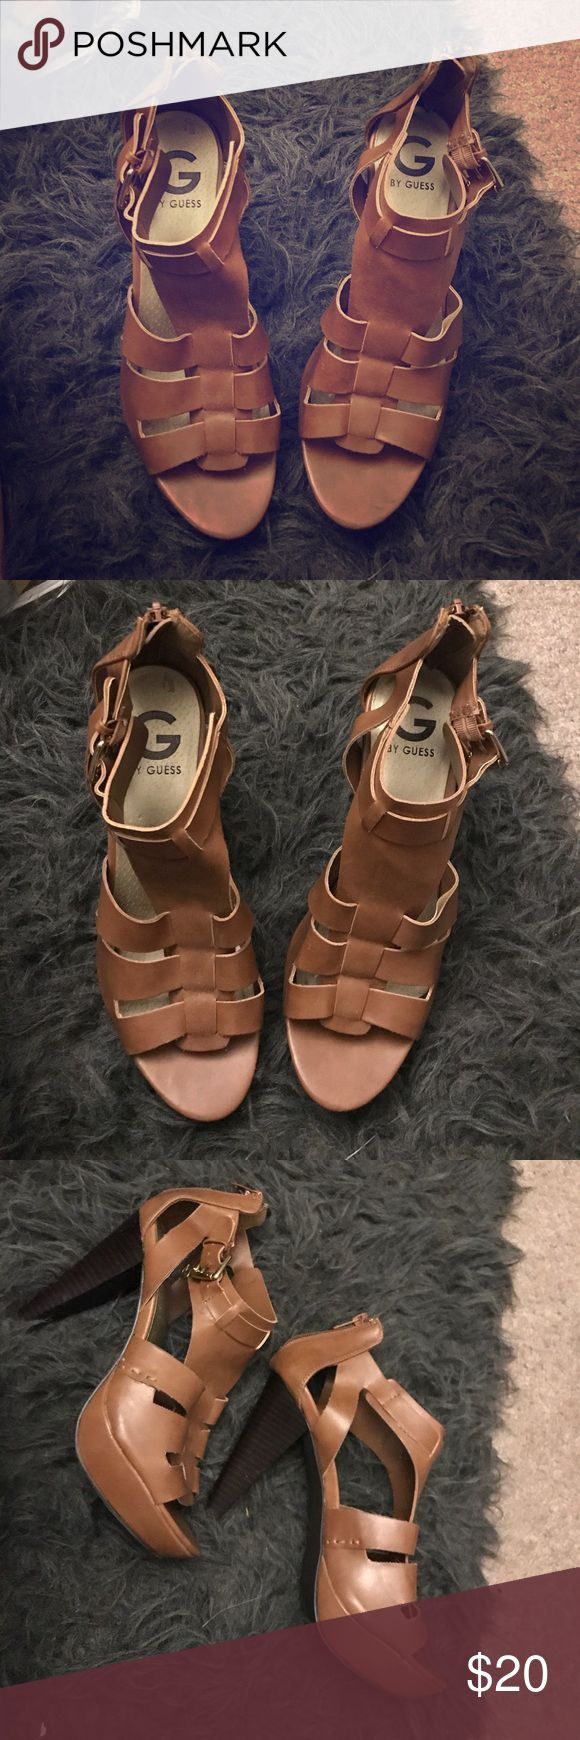 Guess Camel Heels Guess Heels, Sandals. Camel Color. Heel is about 4 inches. Zippered back. Gold Hardware and buckle strap. 7.5 women's. Worn twice. Guess Shoes Heels